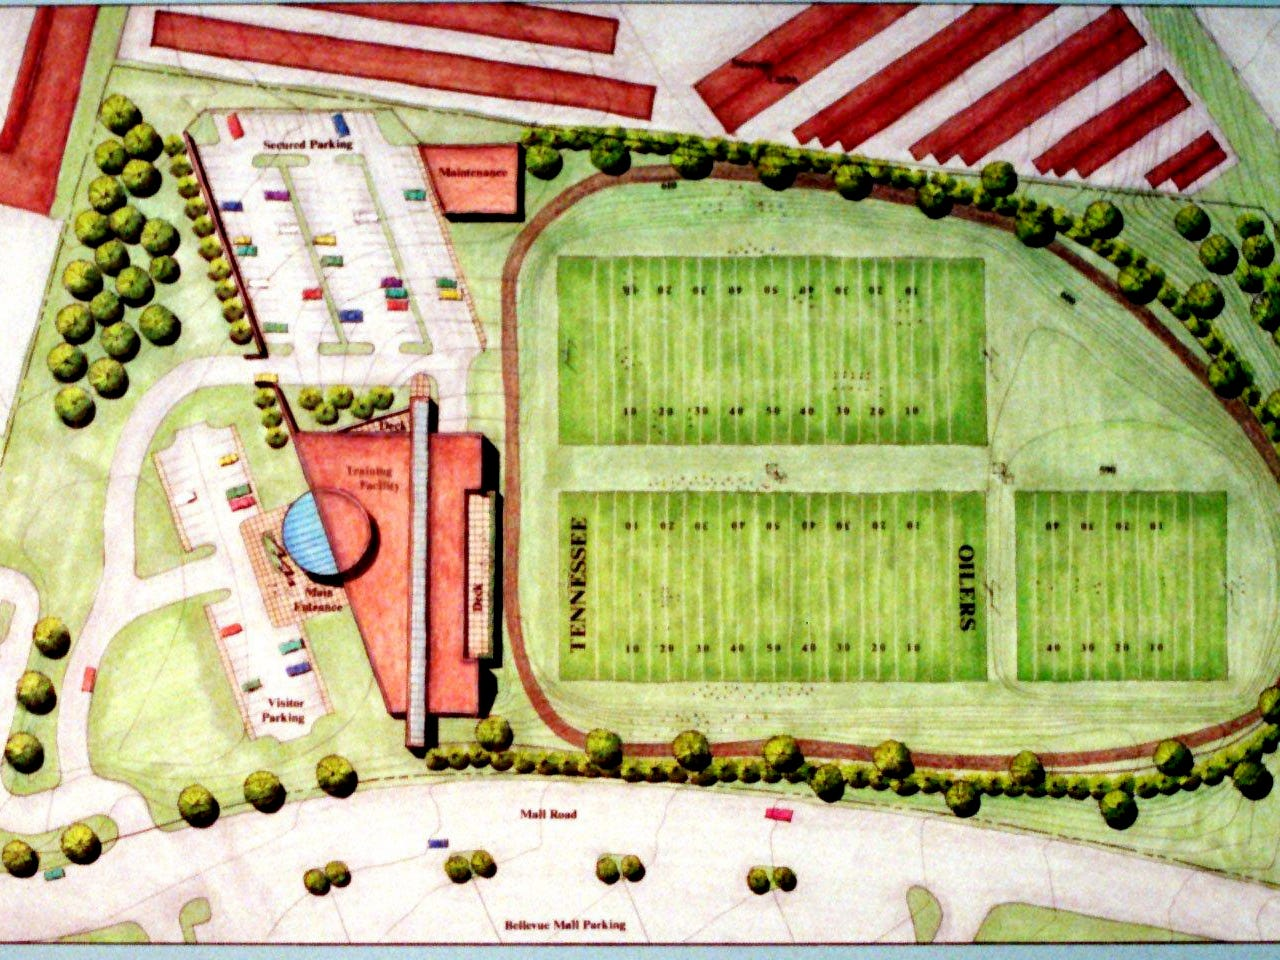 A copy of the rendering for the proposed Oiler's practice facilities at Baptist Hospital's Bellevue location on Highway 70-S in Bellevue during the press conference April 14, 1997.